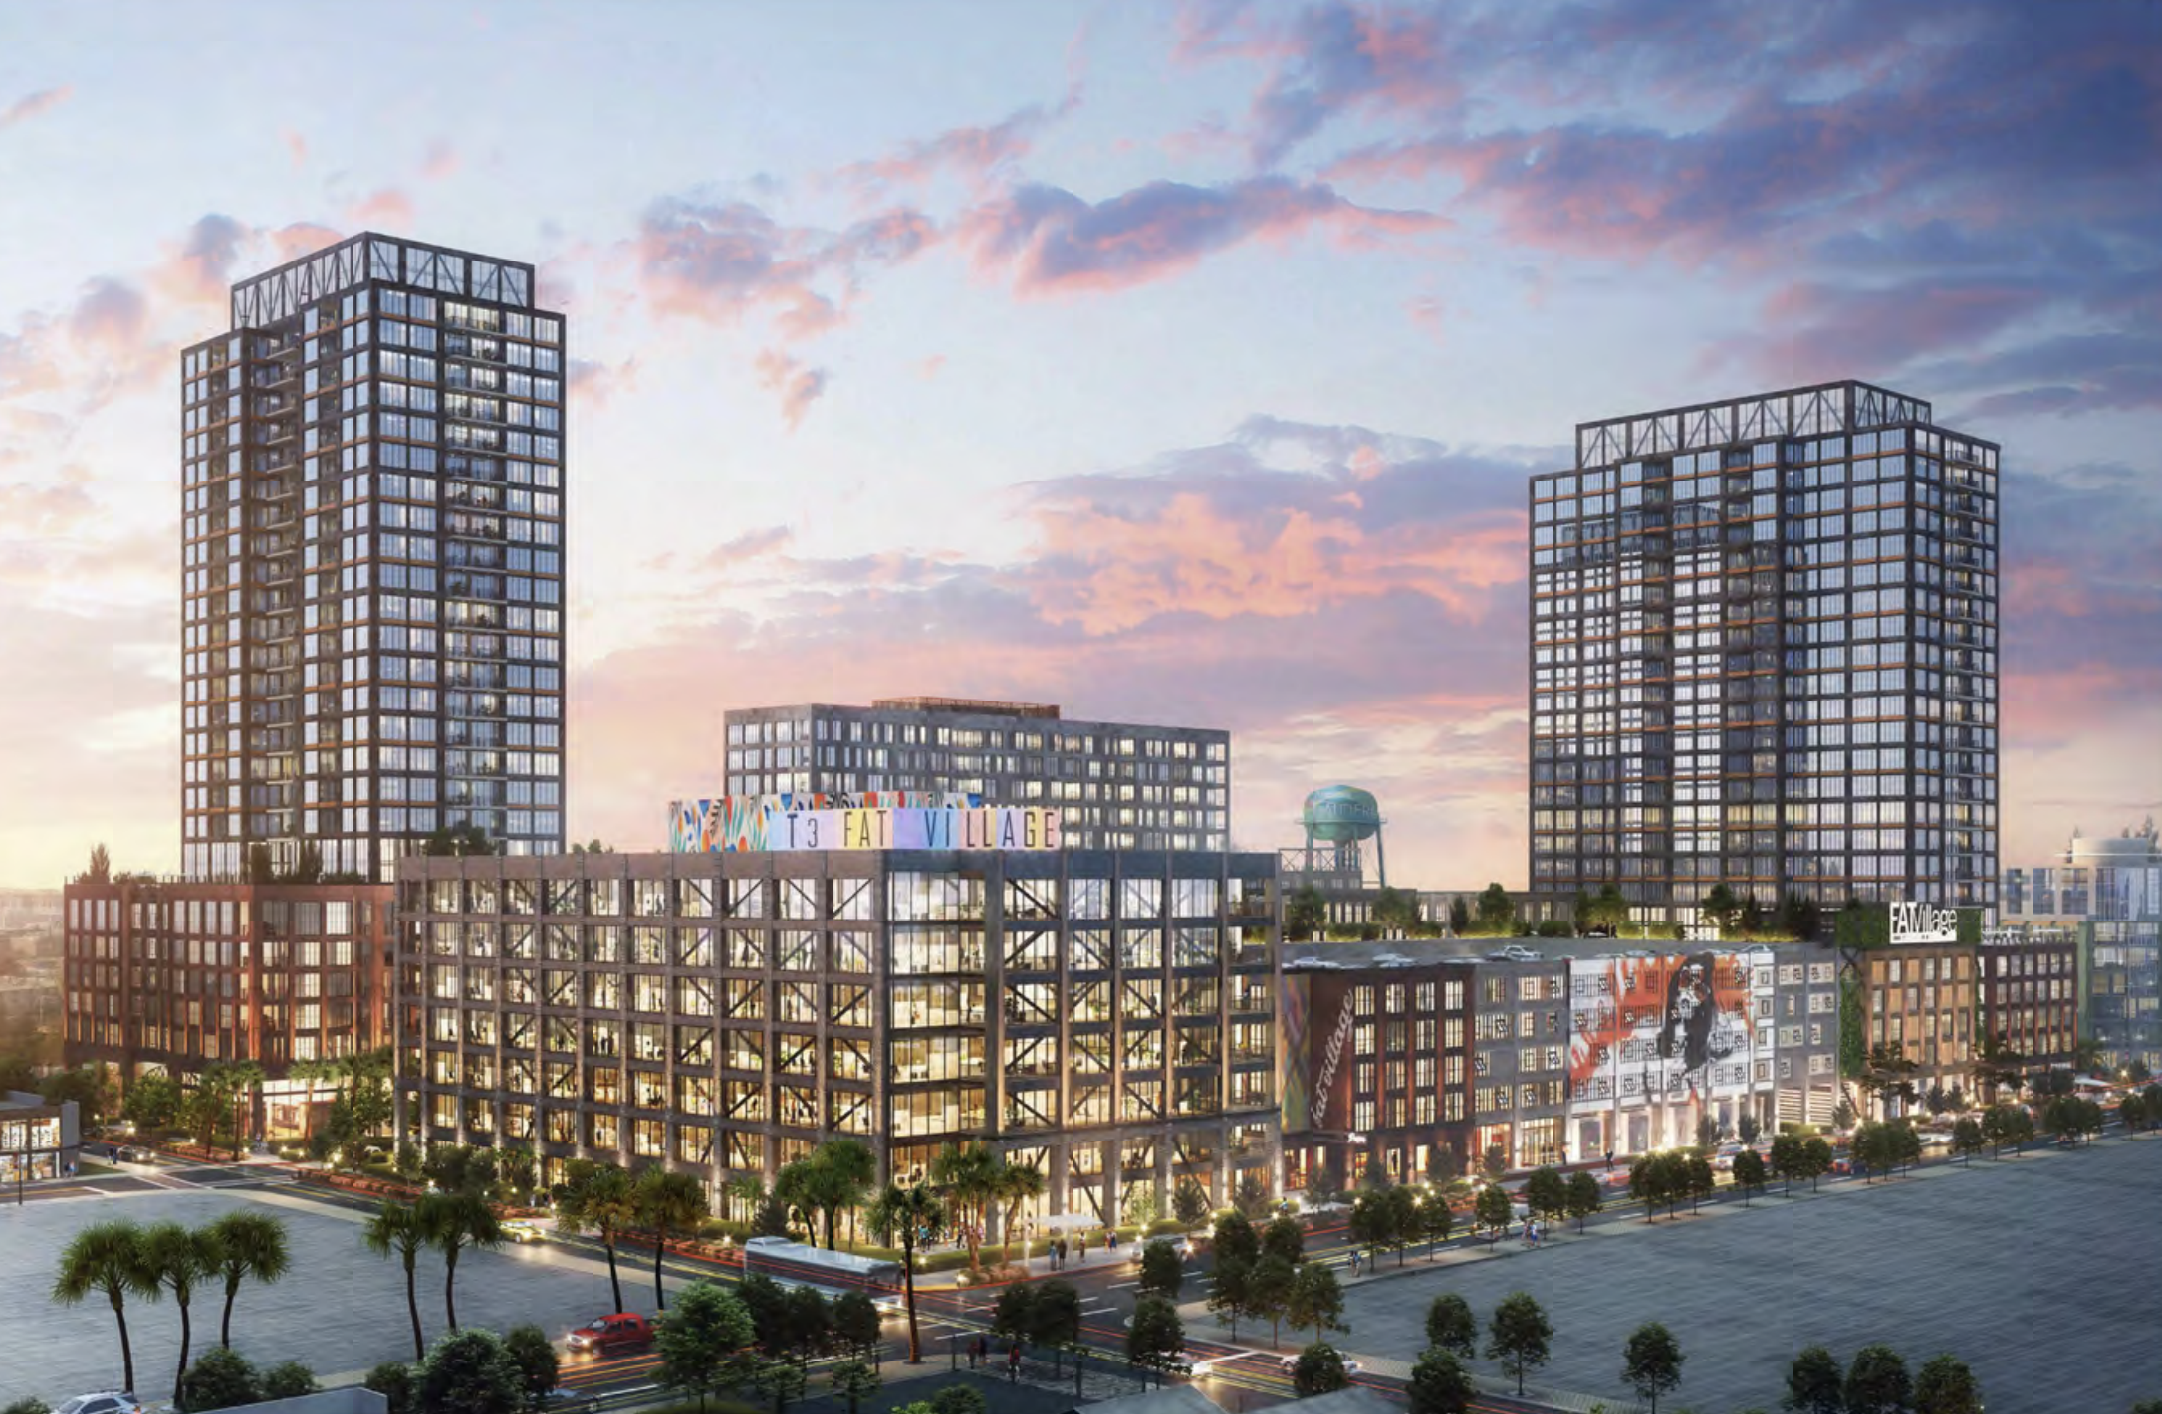 FAT Village East. Designed by SCB & DLR Group.